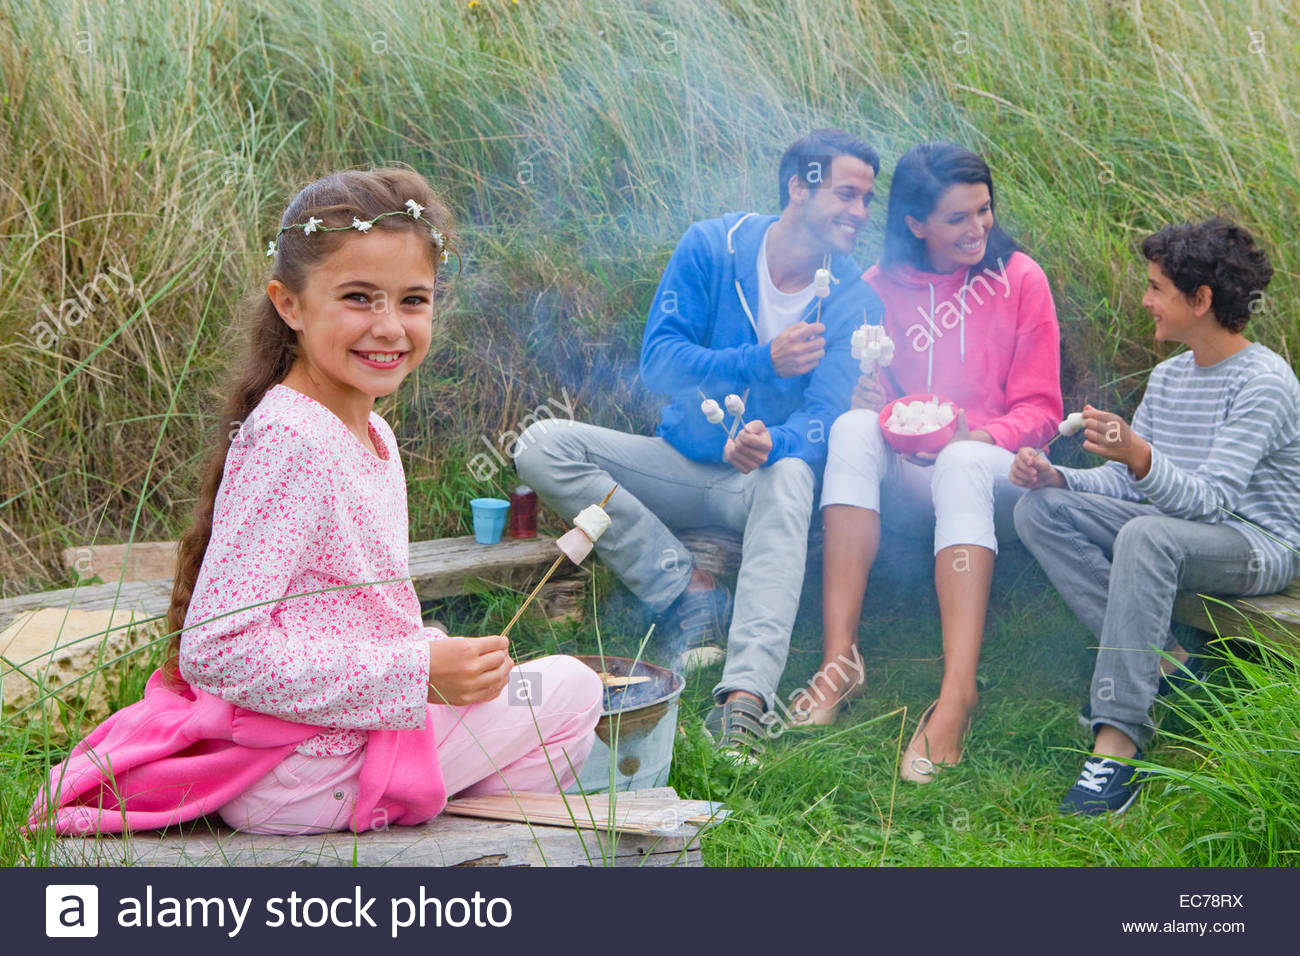 Family roasting marshmallows at campsite - Stock Image